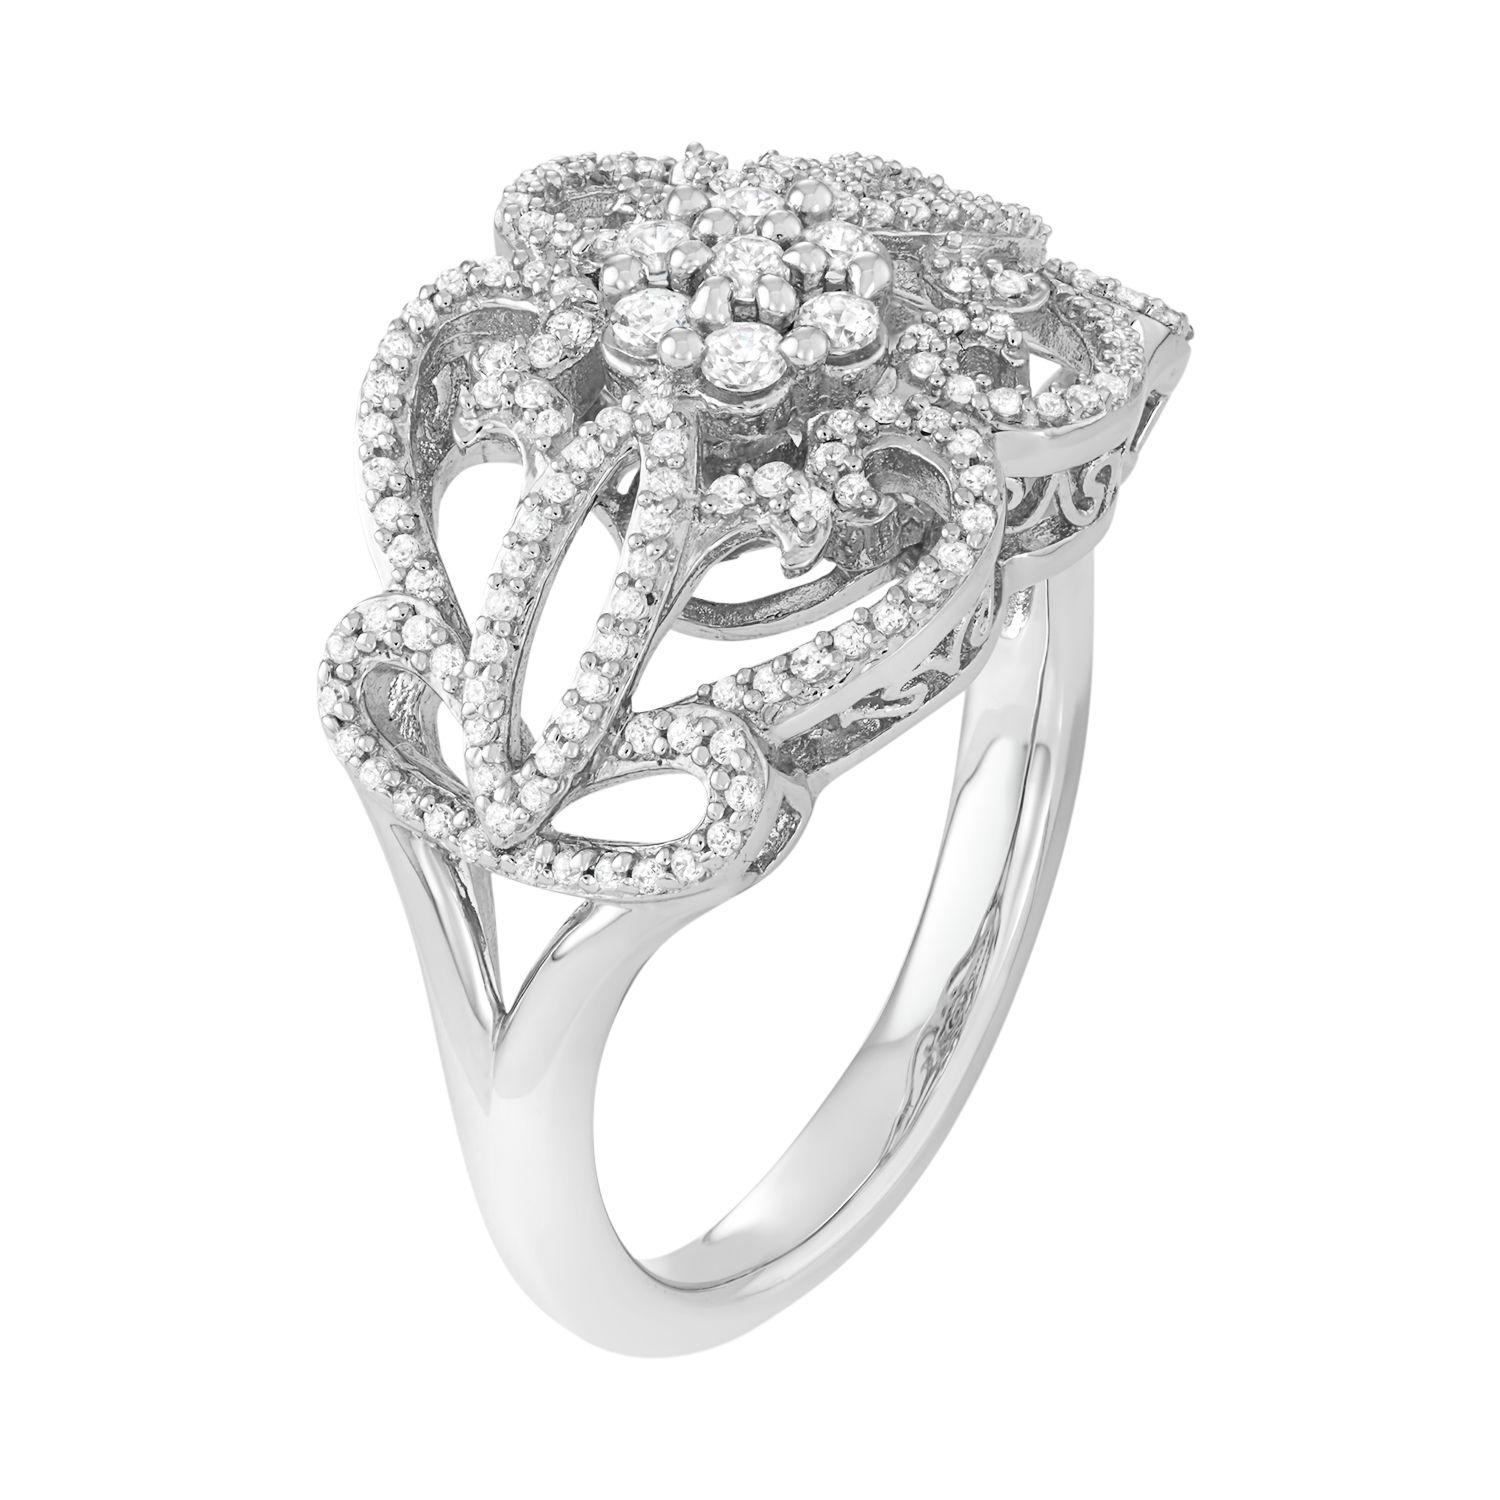 that see ring similar collection absolutely engagement does tried this to in is on someone rings love have wanted topic one case wang anyone a photo i it vera beautiful